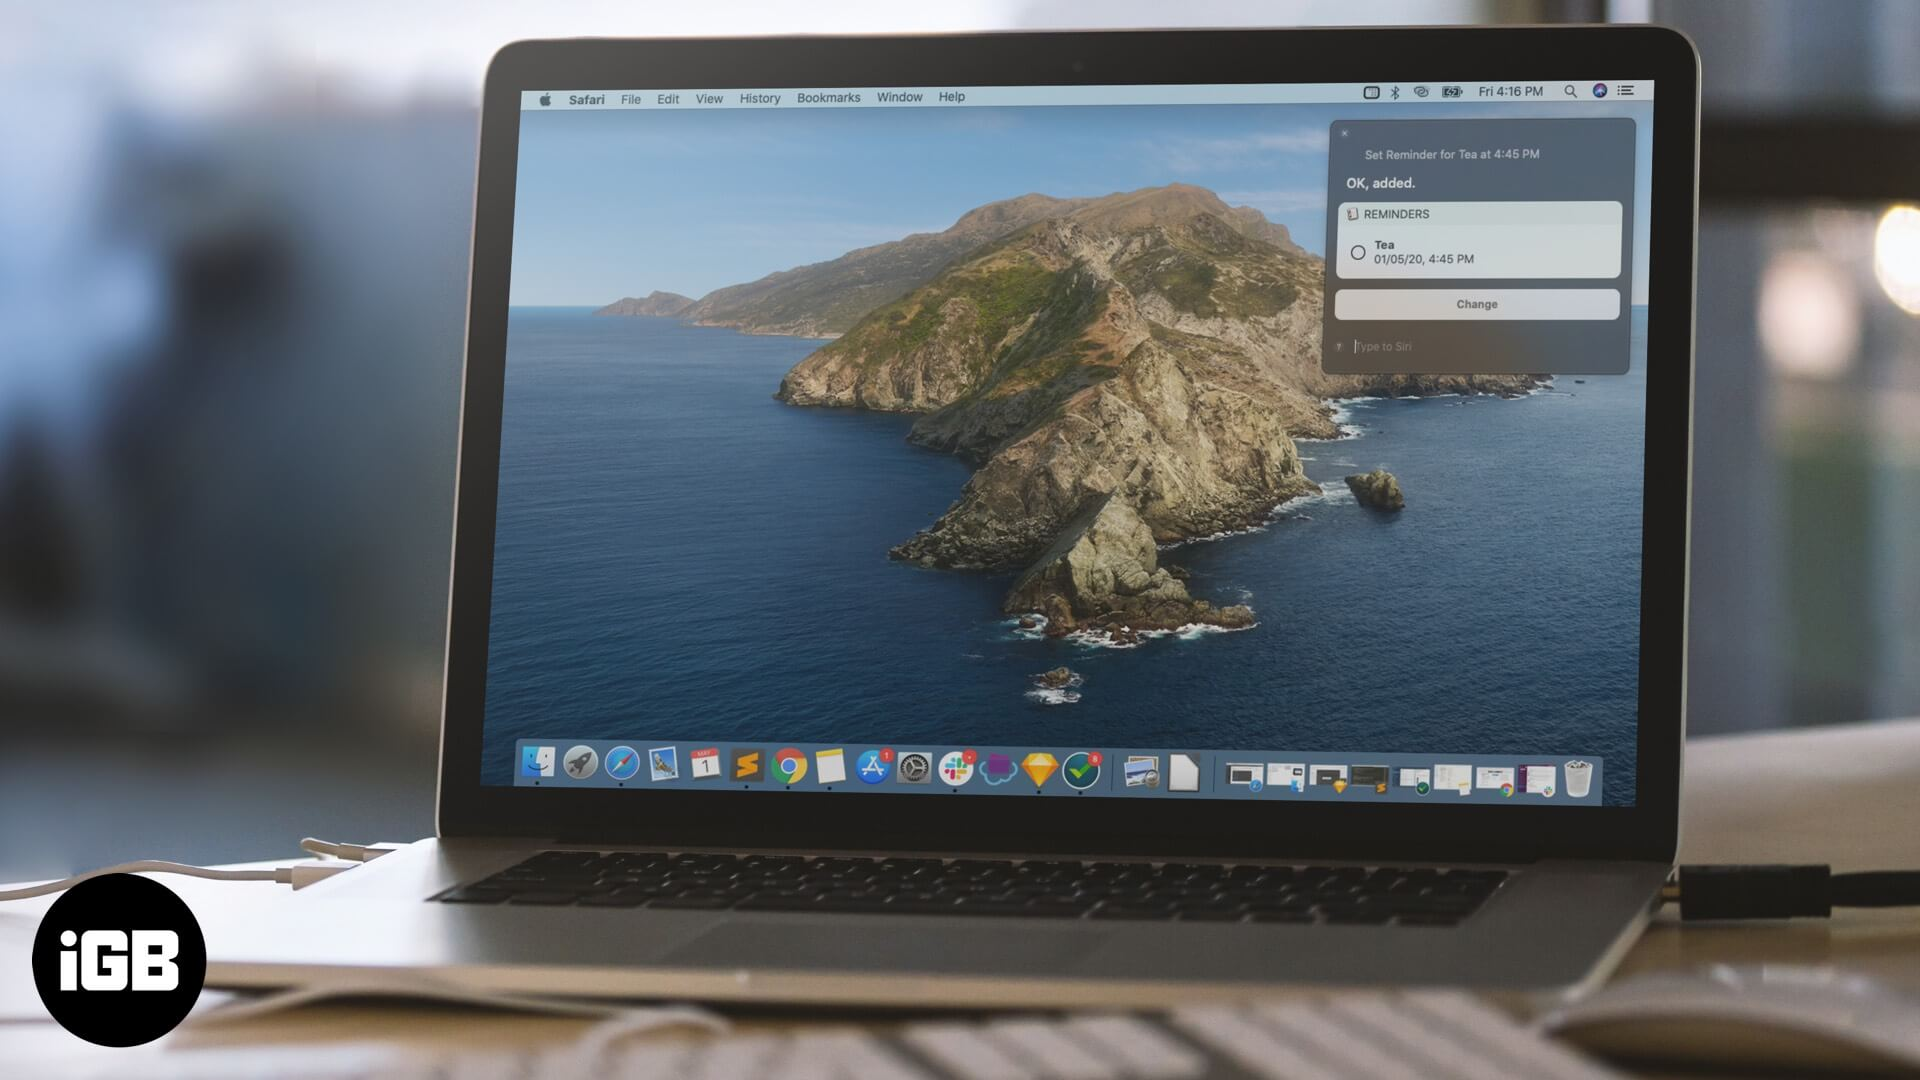 How to Enable Type to Siri on Mac in macOS Catalina